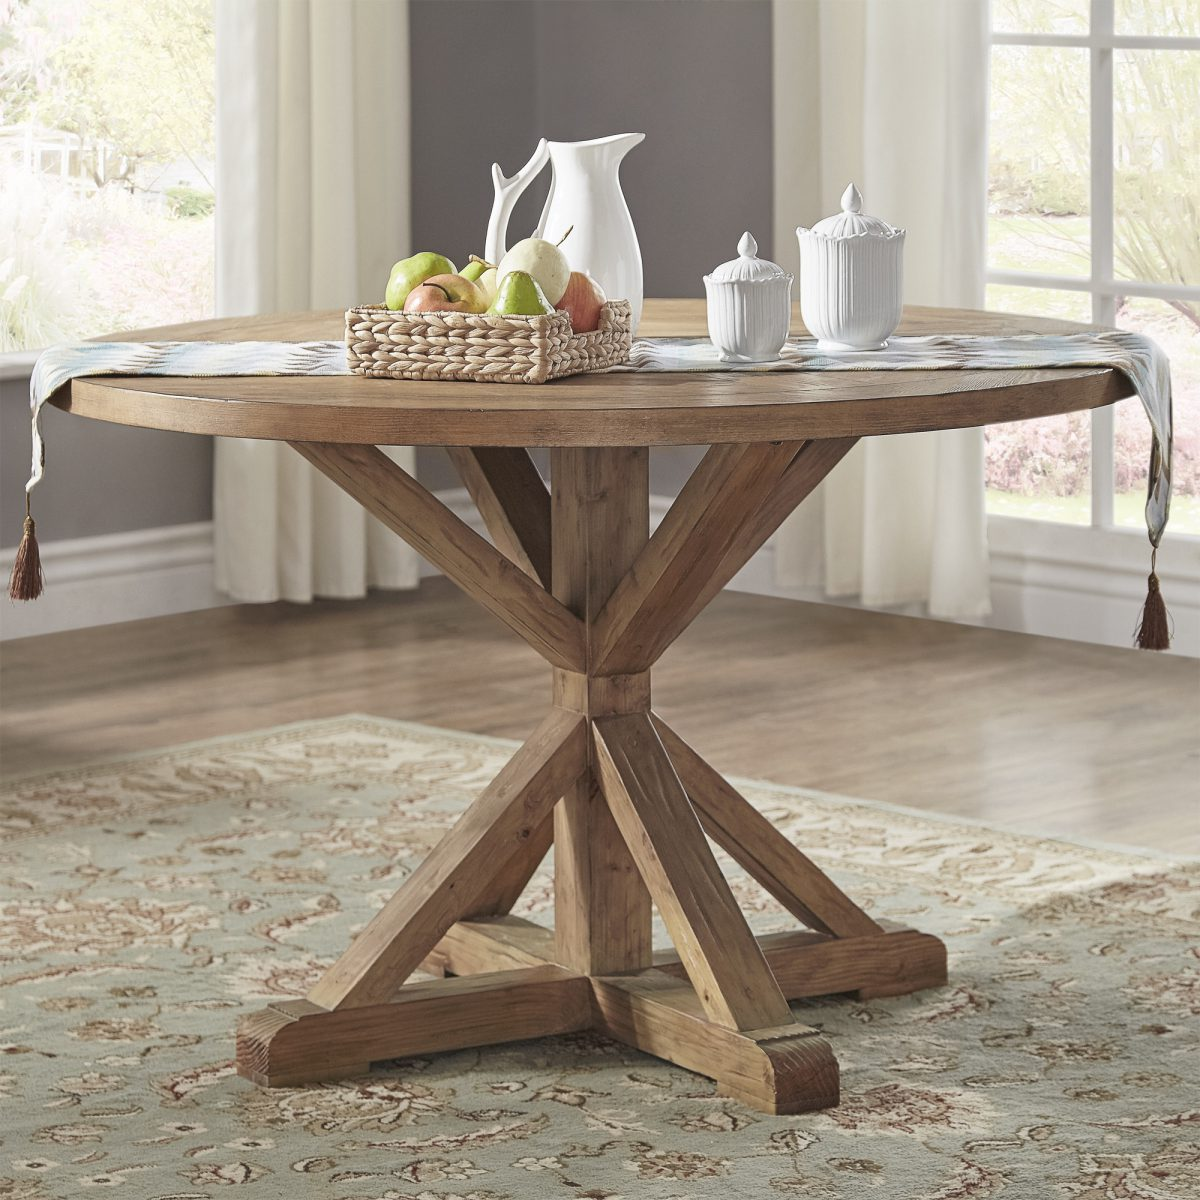 Benchwright Rustic X-base 48-inch Round Dining Table Set